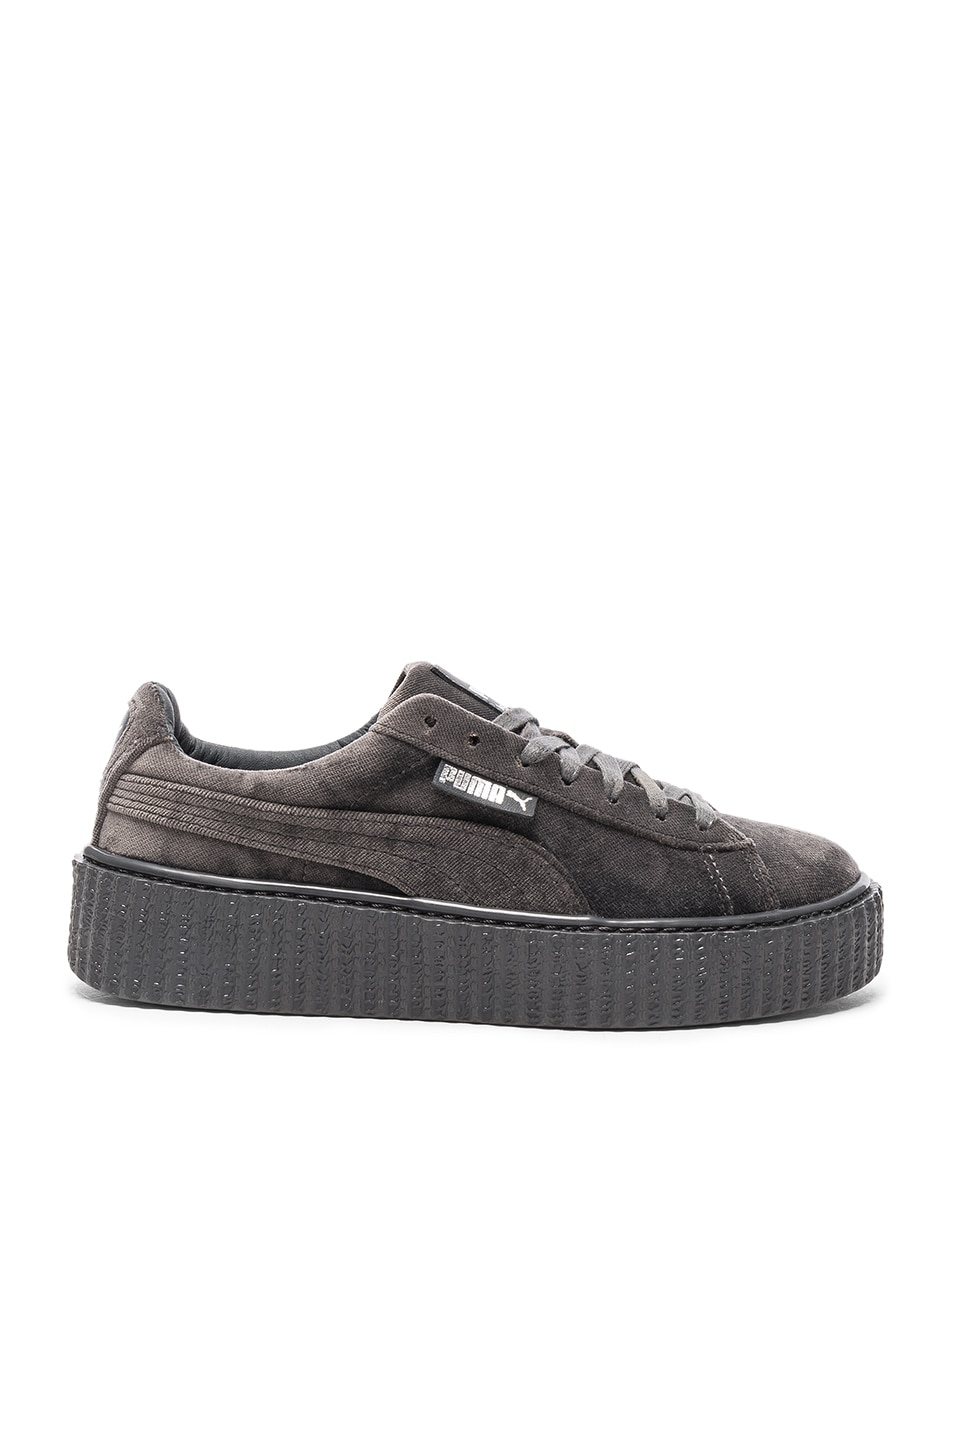 Image 1 of Fenty by Puma Creepers Velvet in Glacier Gray